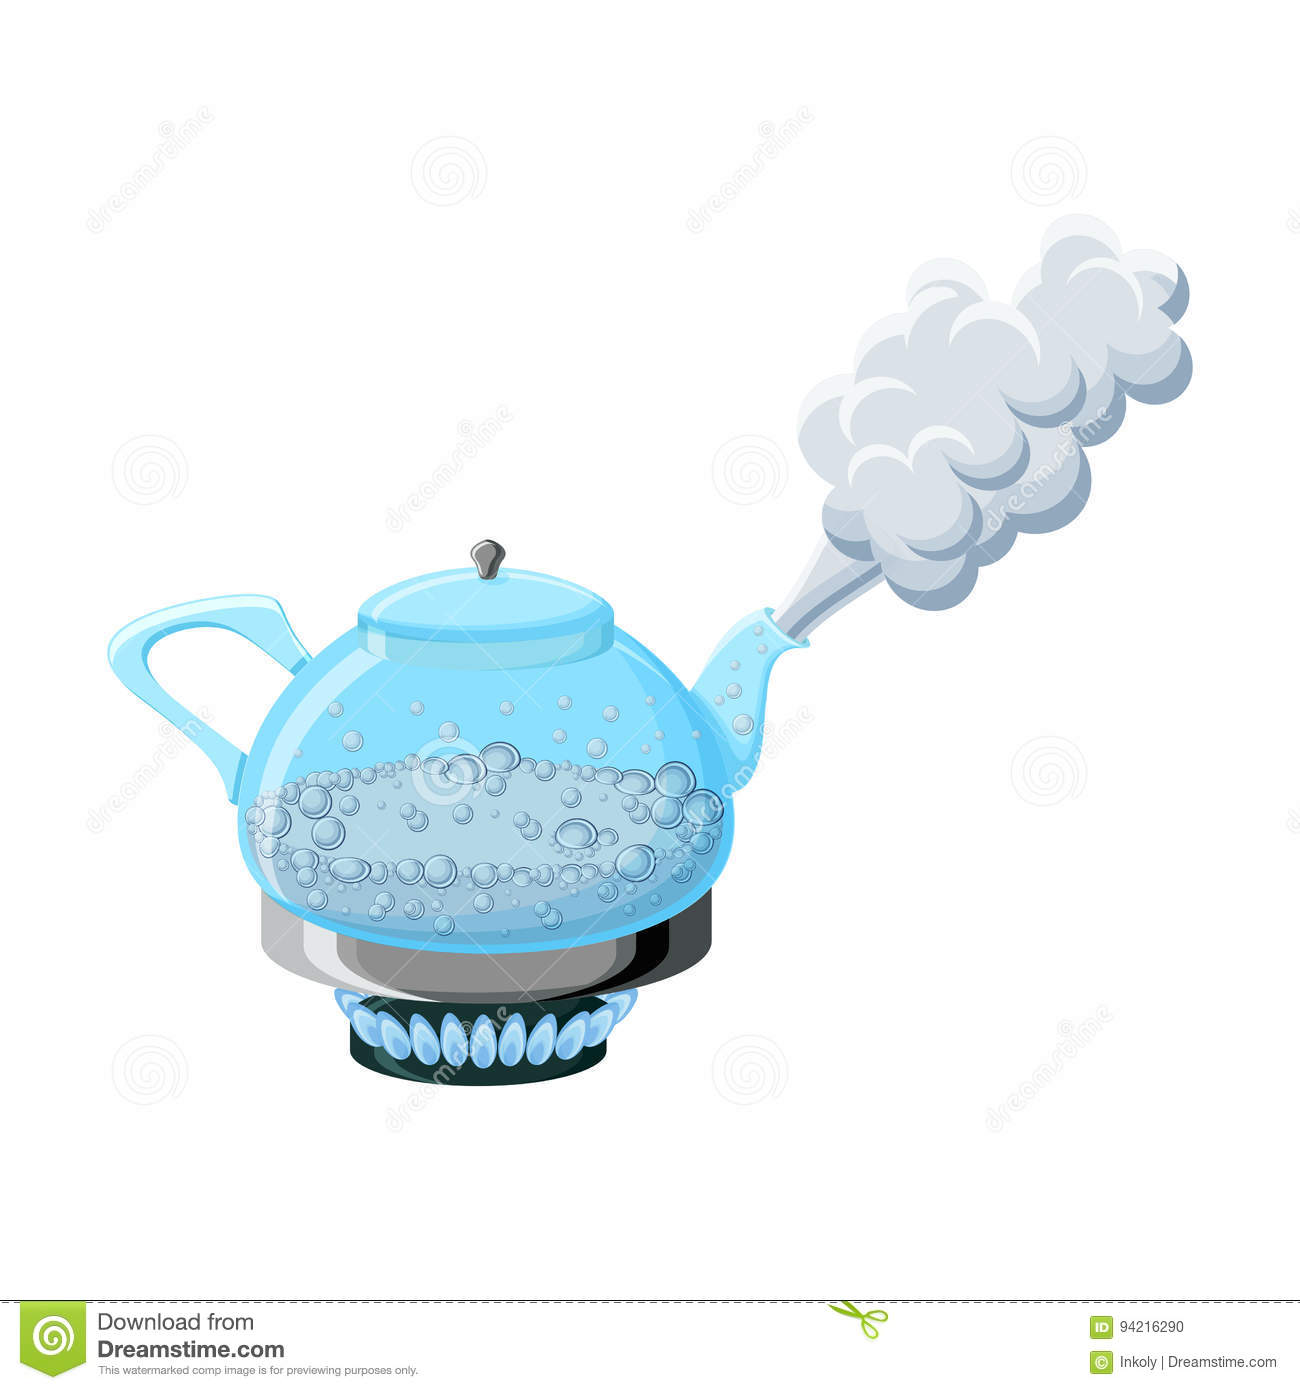 Glass Kettle With Boiling Water And Steam Stock Vector ...